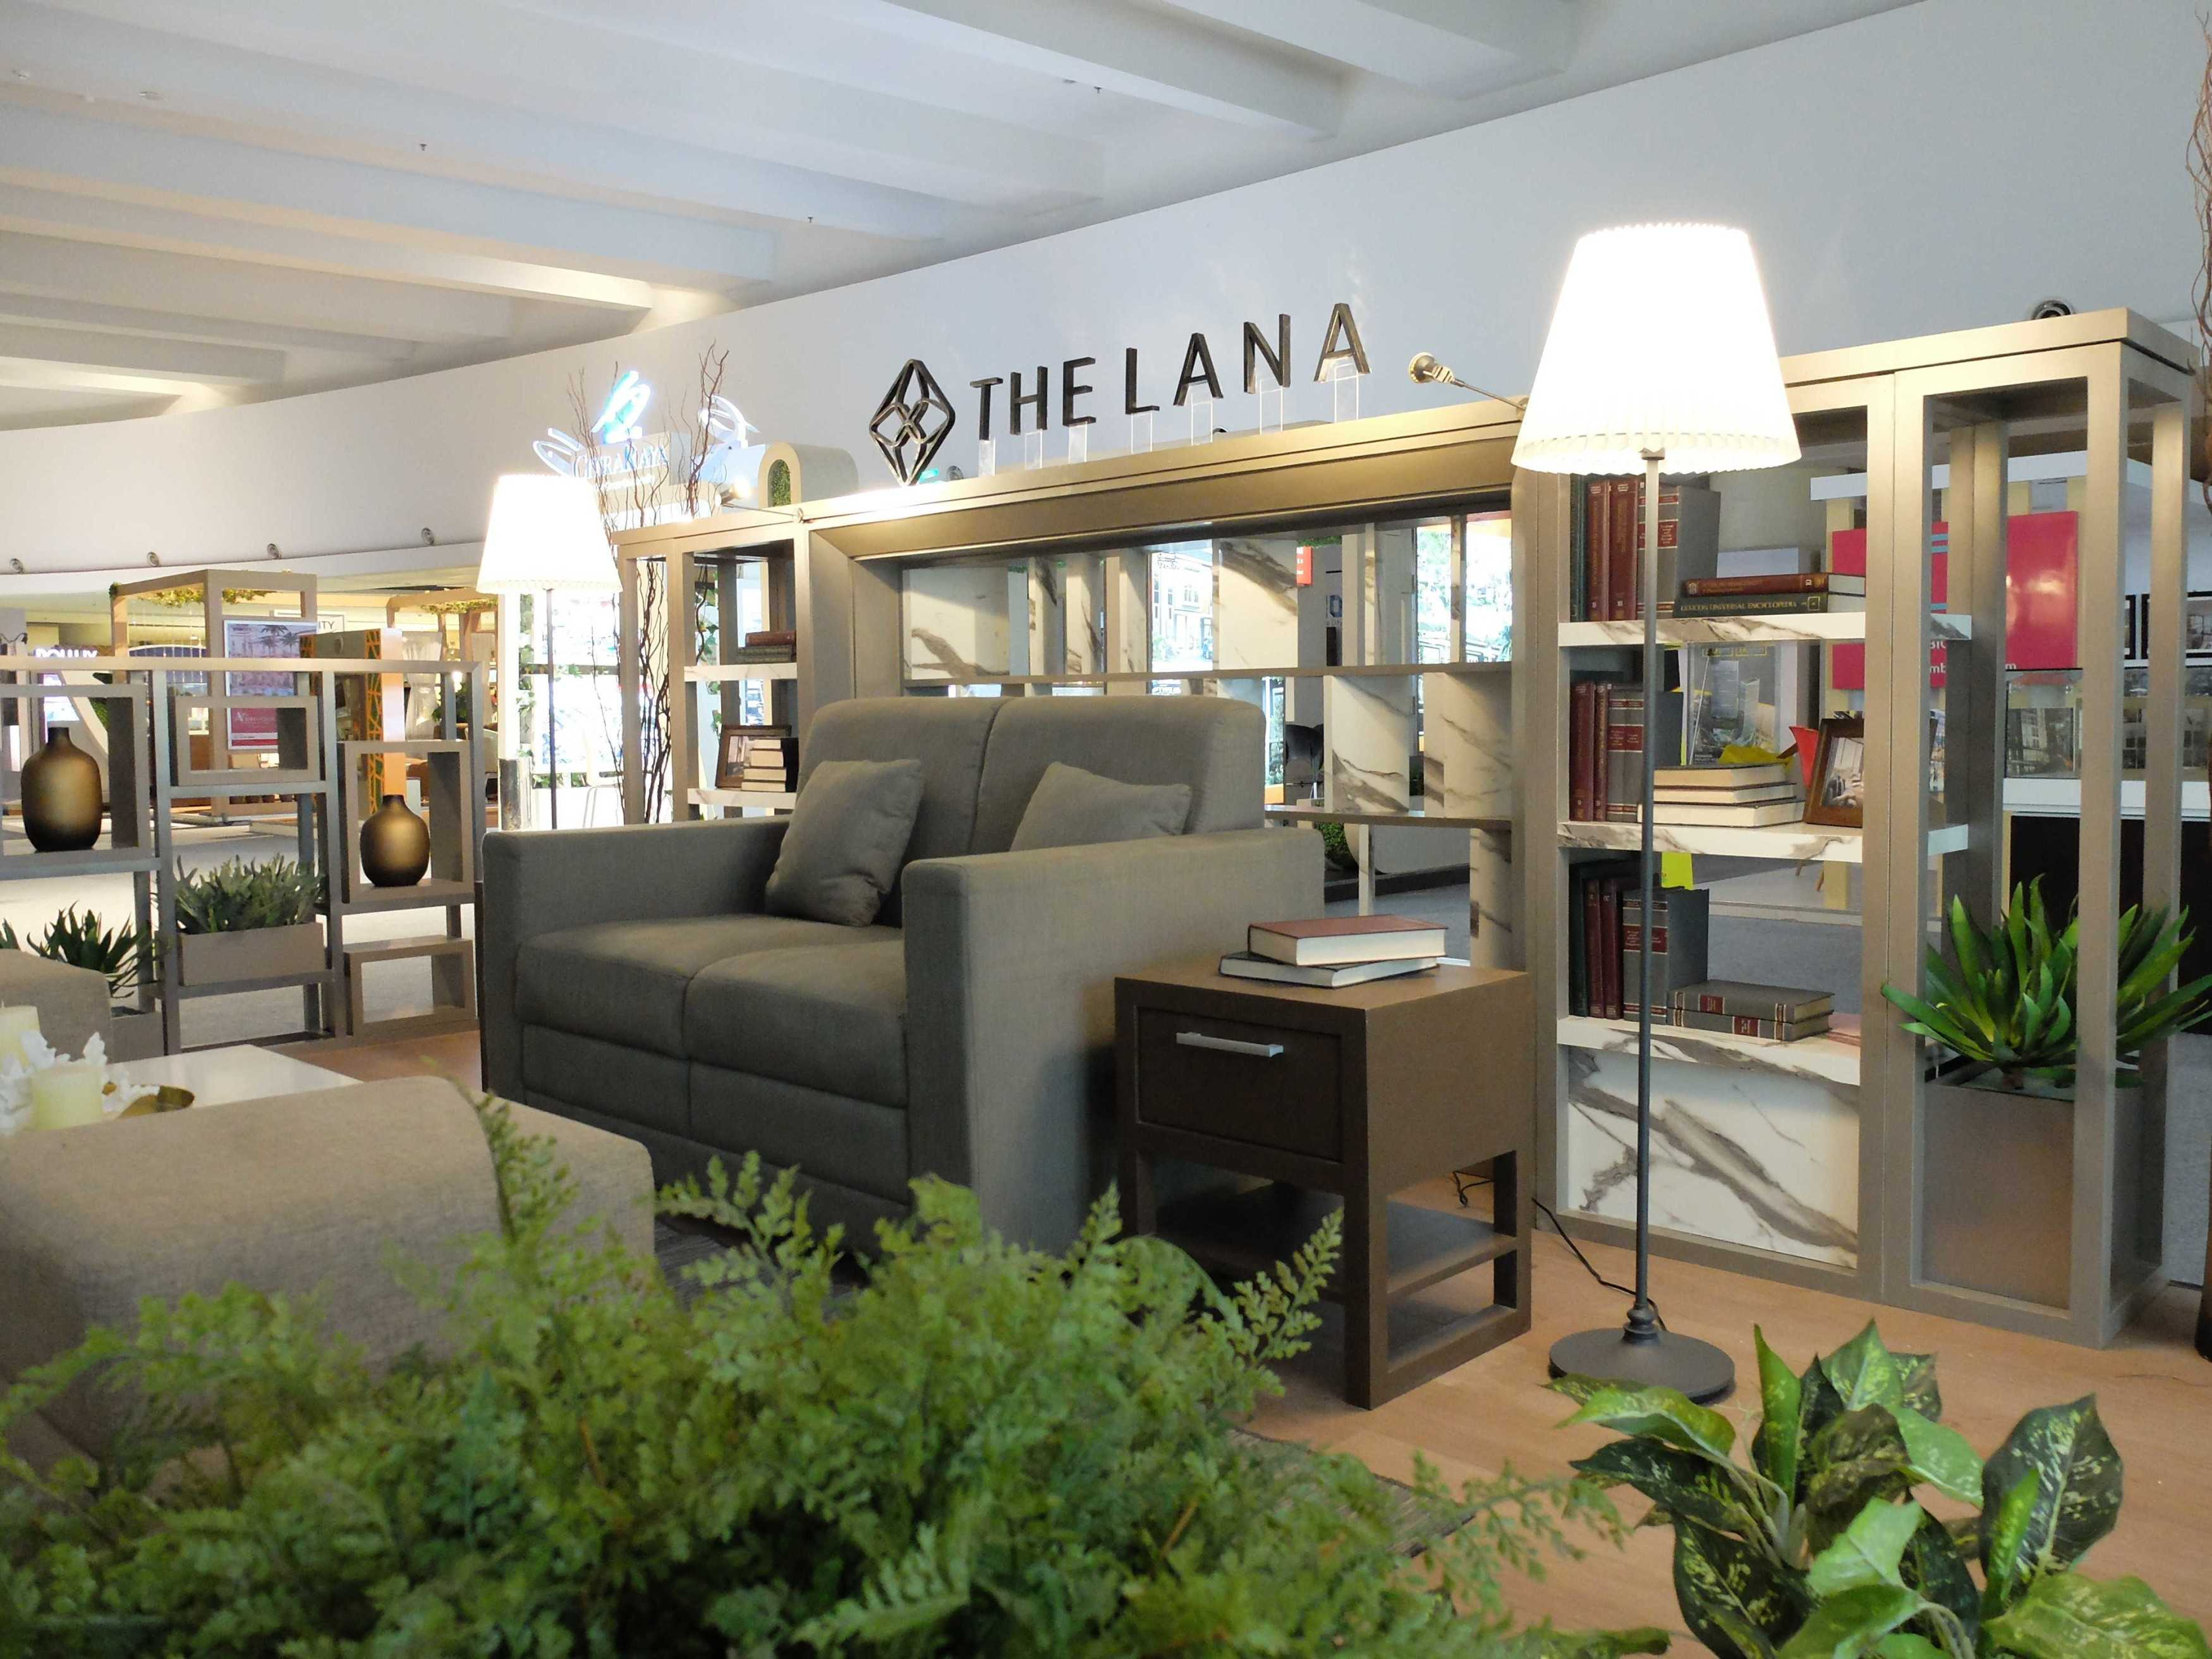 Pt. Modula The Lana Jakarta Jakarta Booth Type A Minimalis The Size Of The Booth's Space Is 4M X 5M 26309